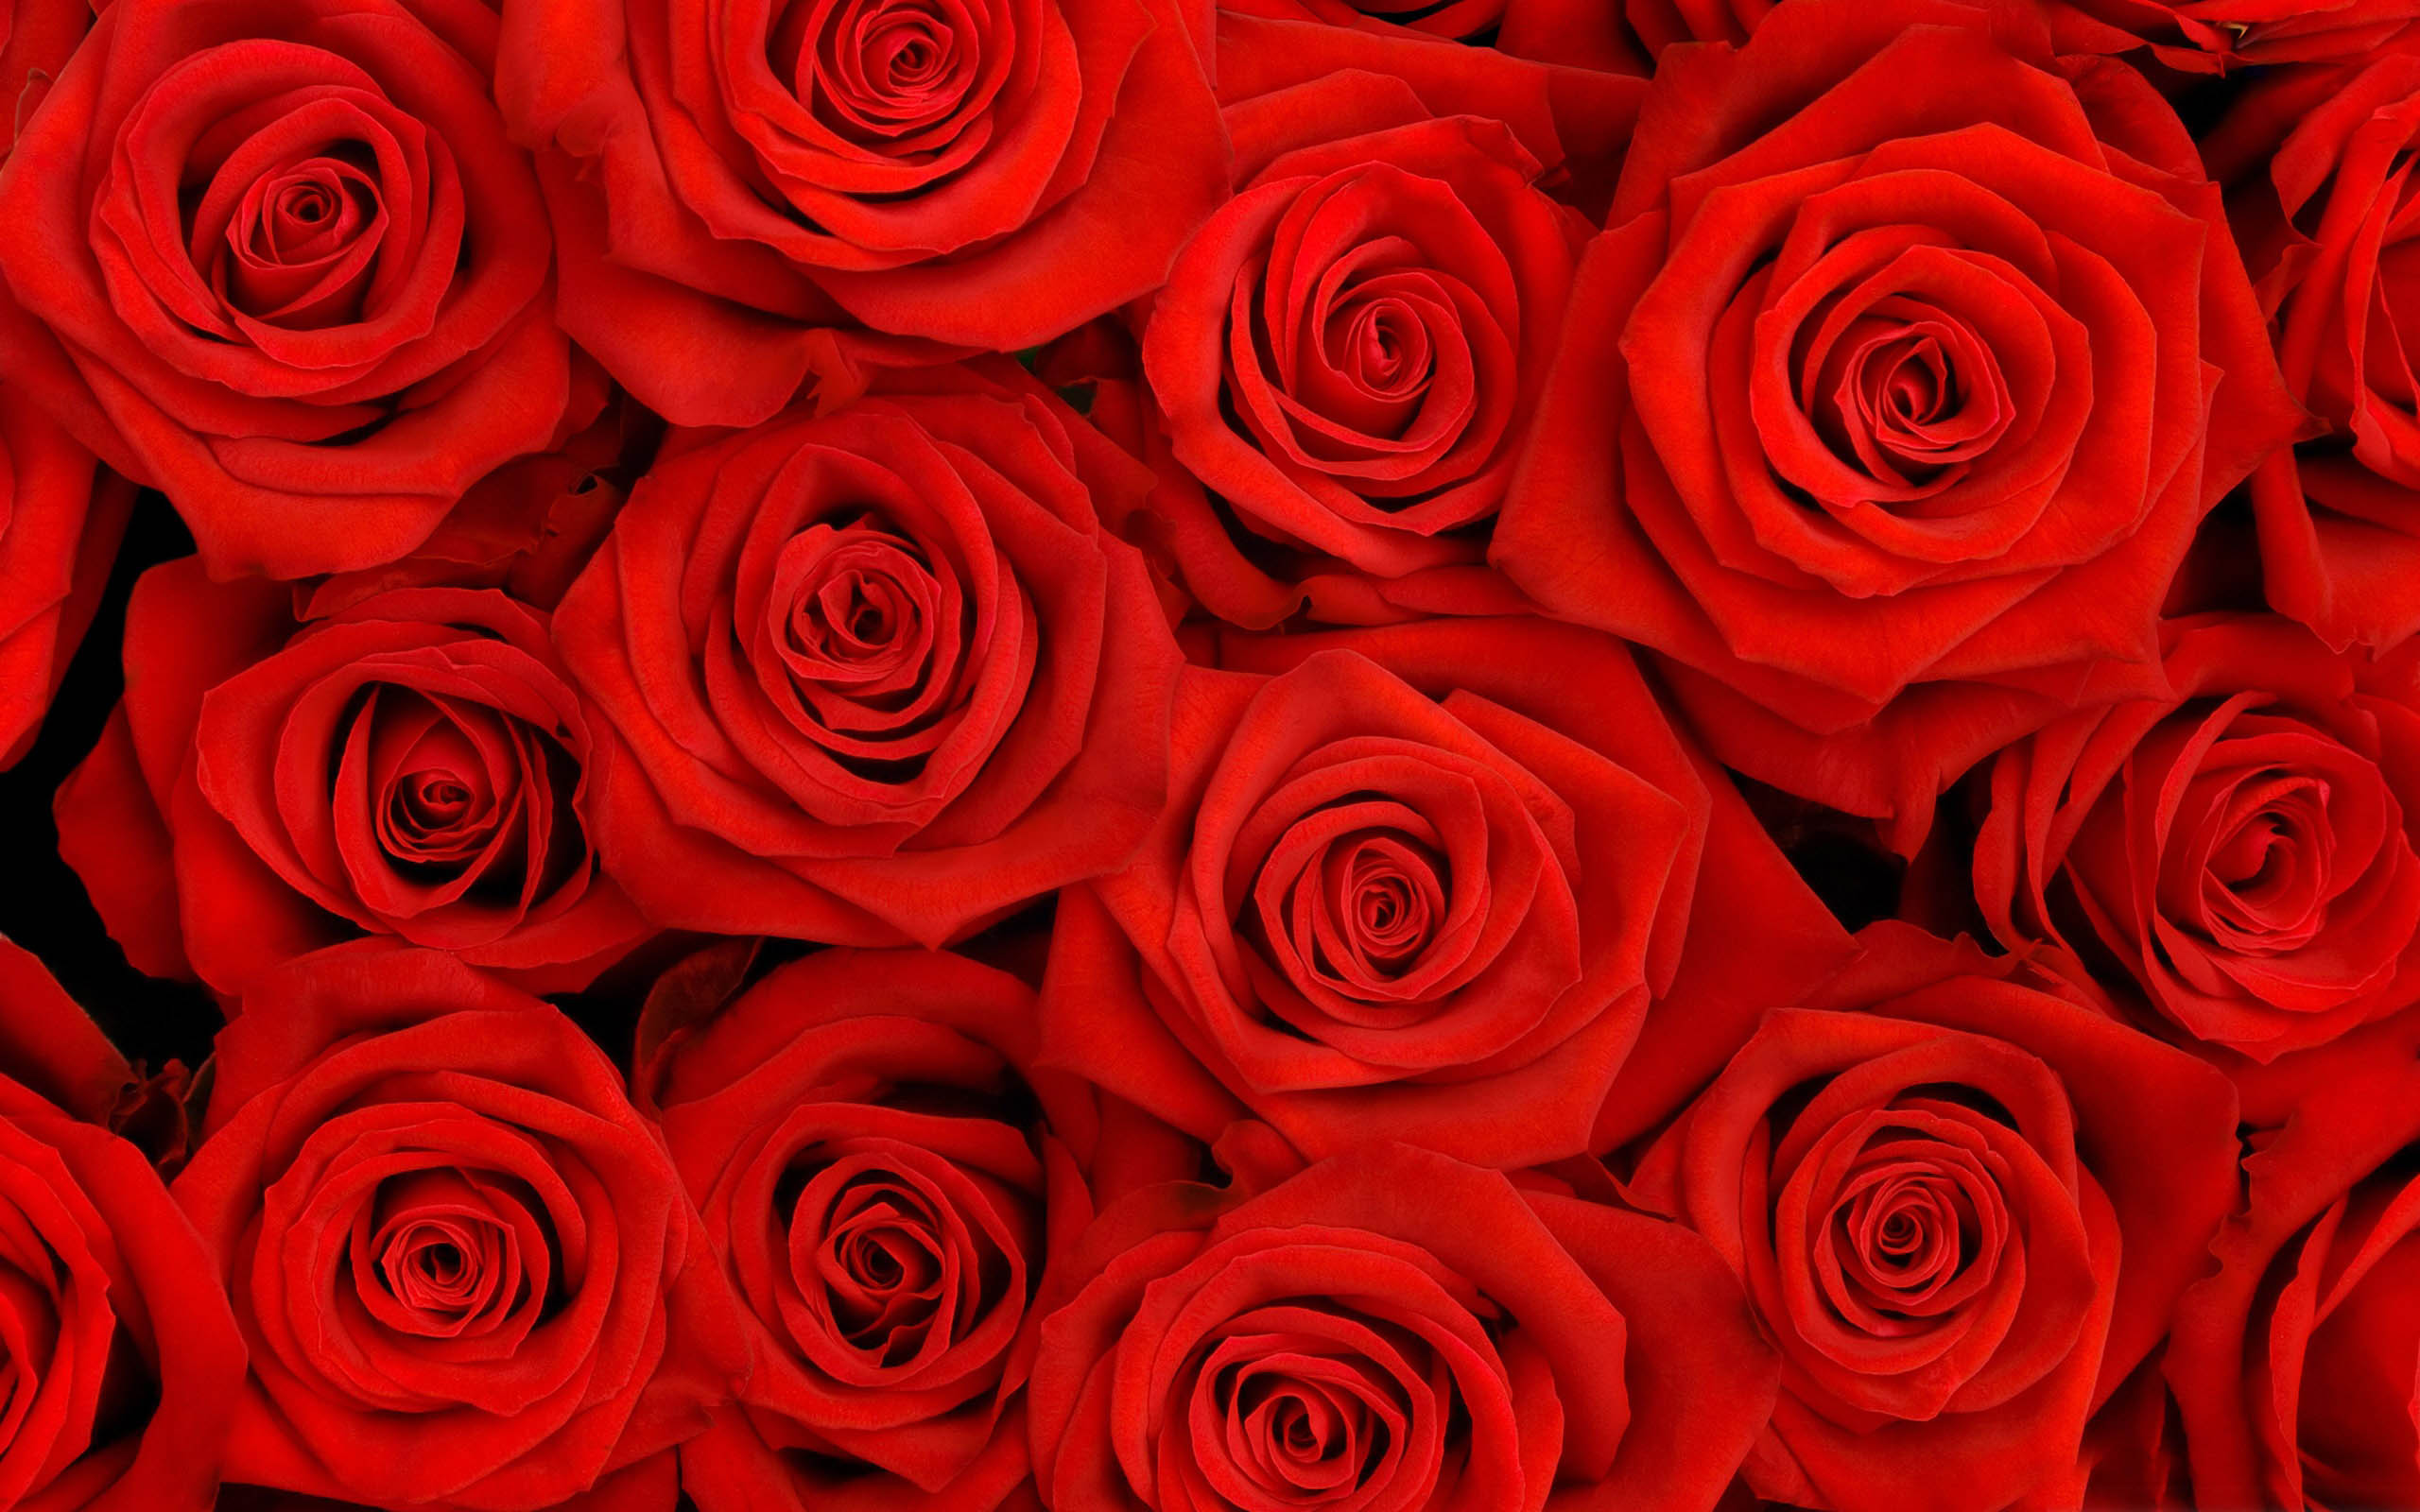 Red Roses Tumblr Background-36 | HD Wallpapers, HD images ...